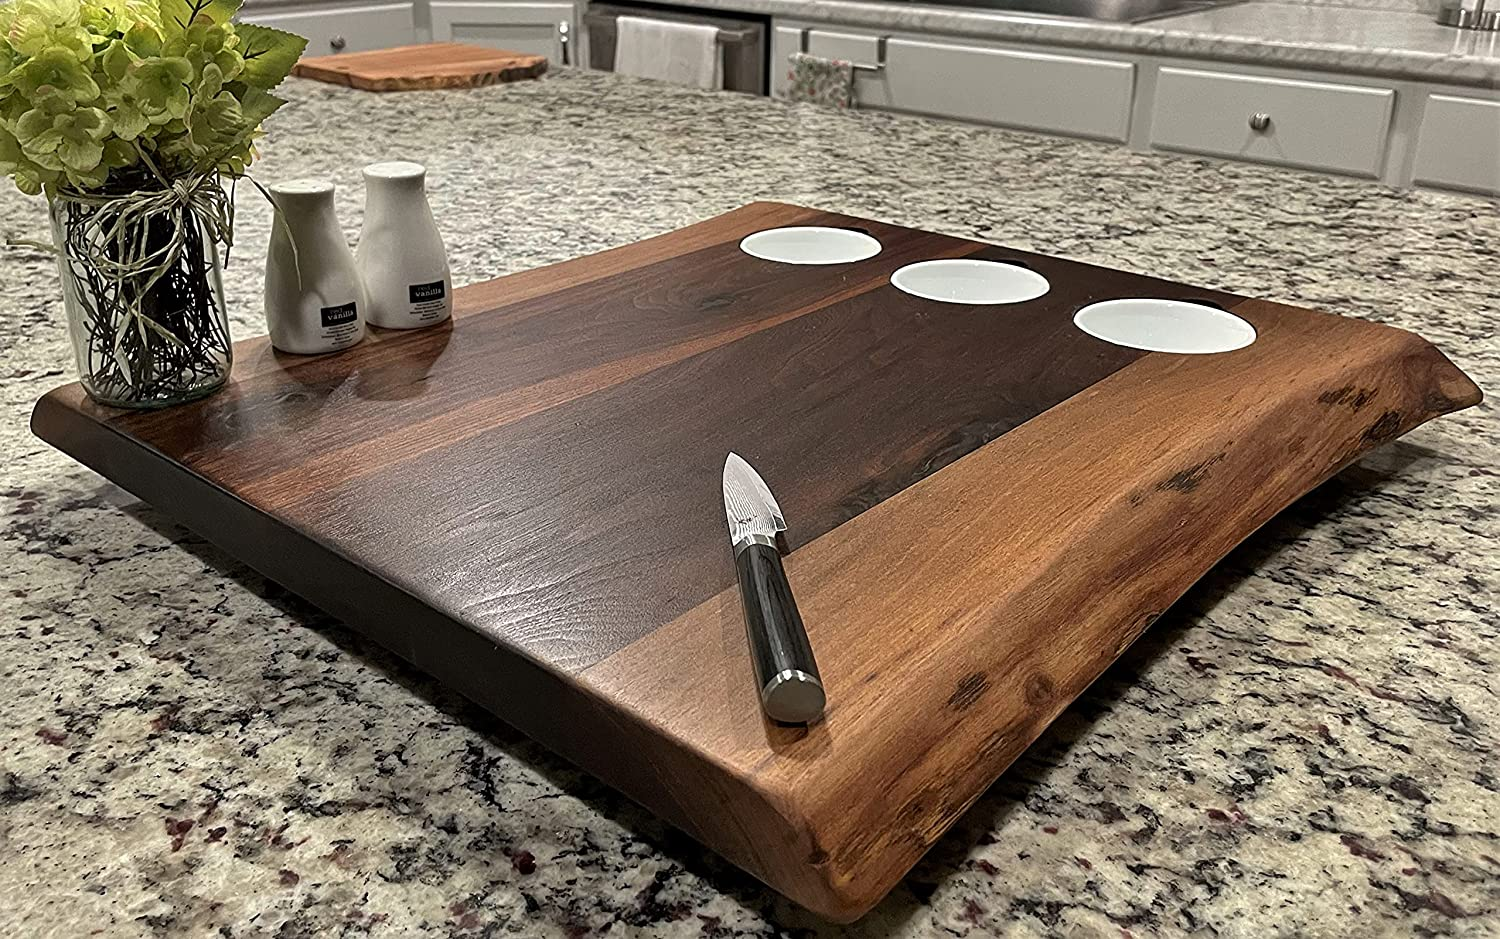 Black Walnut XL Forest-to-Table Double Edge Board Wholesale Live Appetizer Outstanding